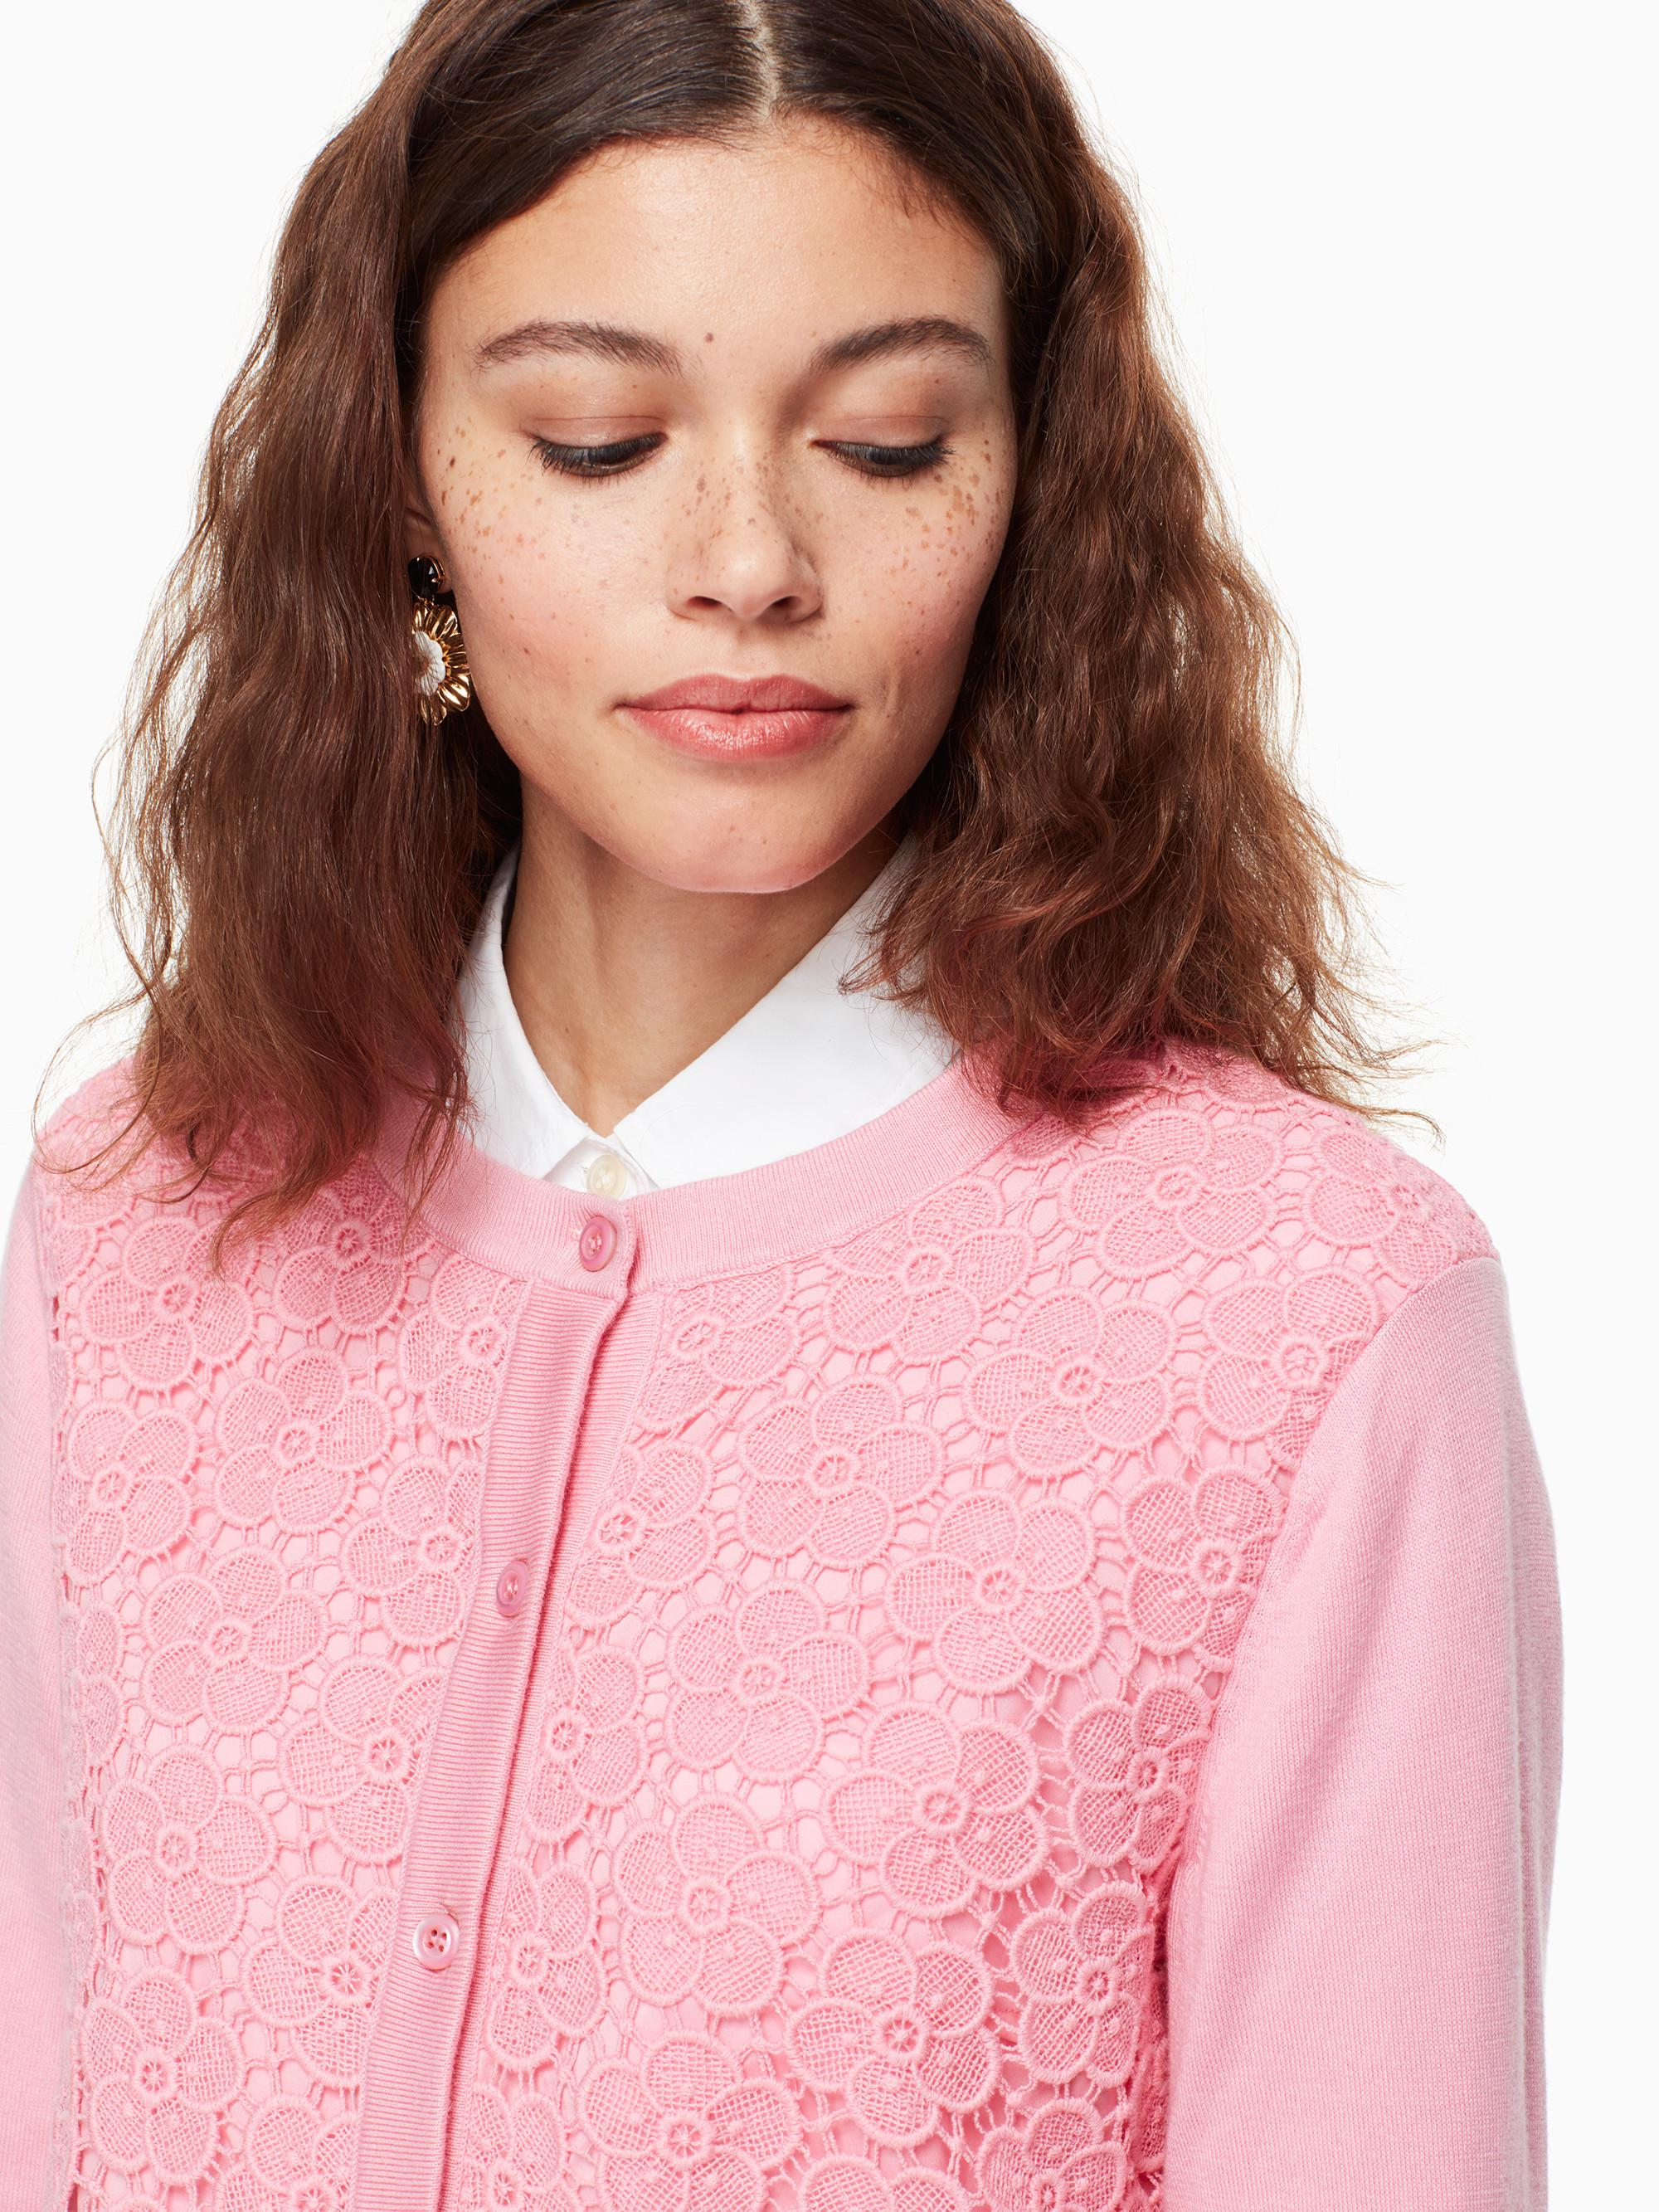 5558f1757ae0f7 Kate Spade Bloom Floral Lace Cardigan in Pink - Lyst